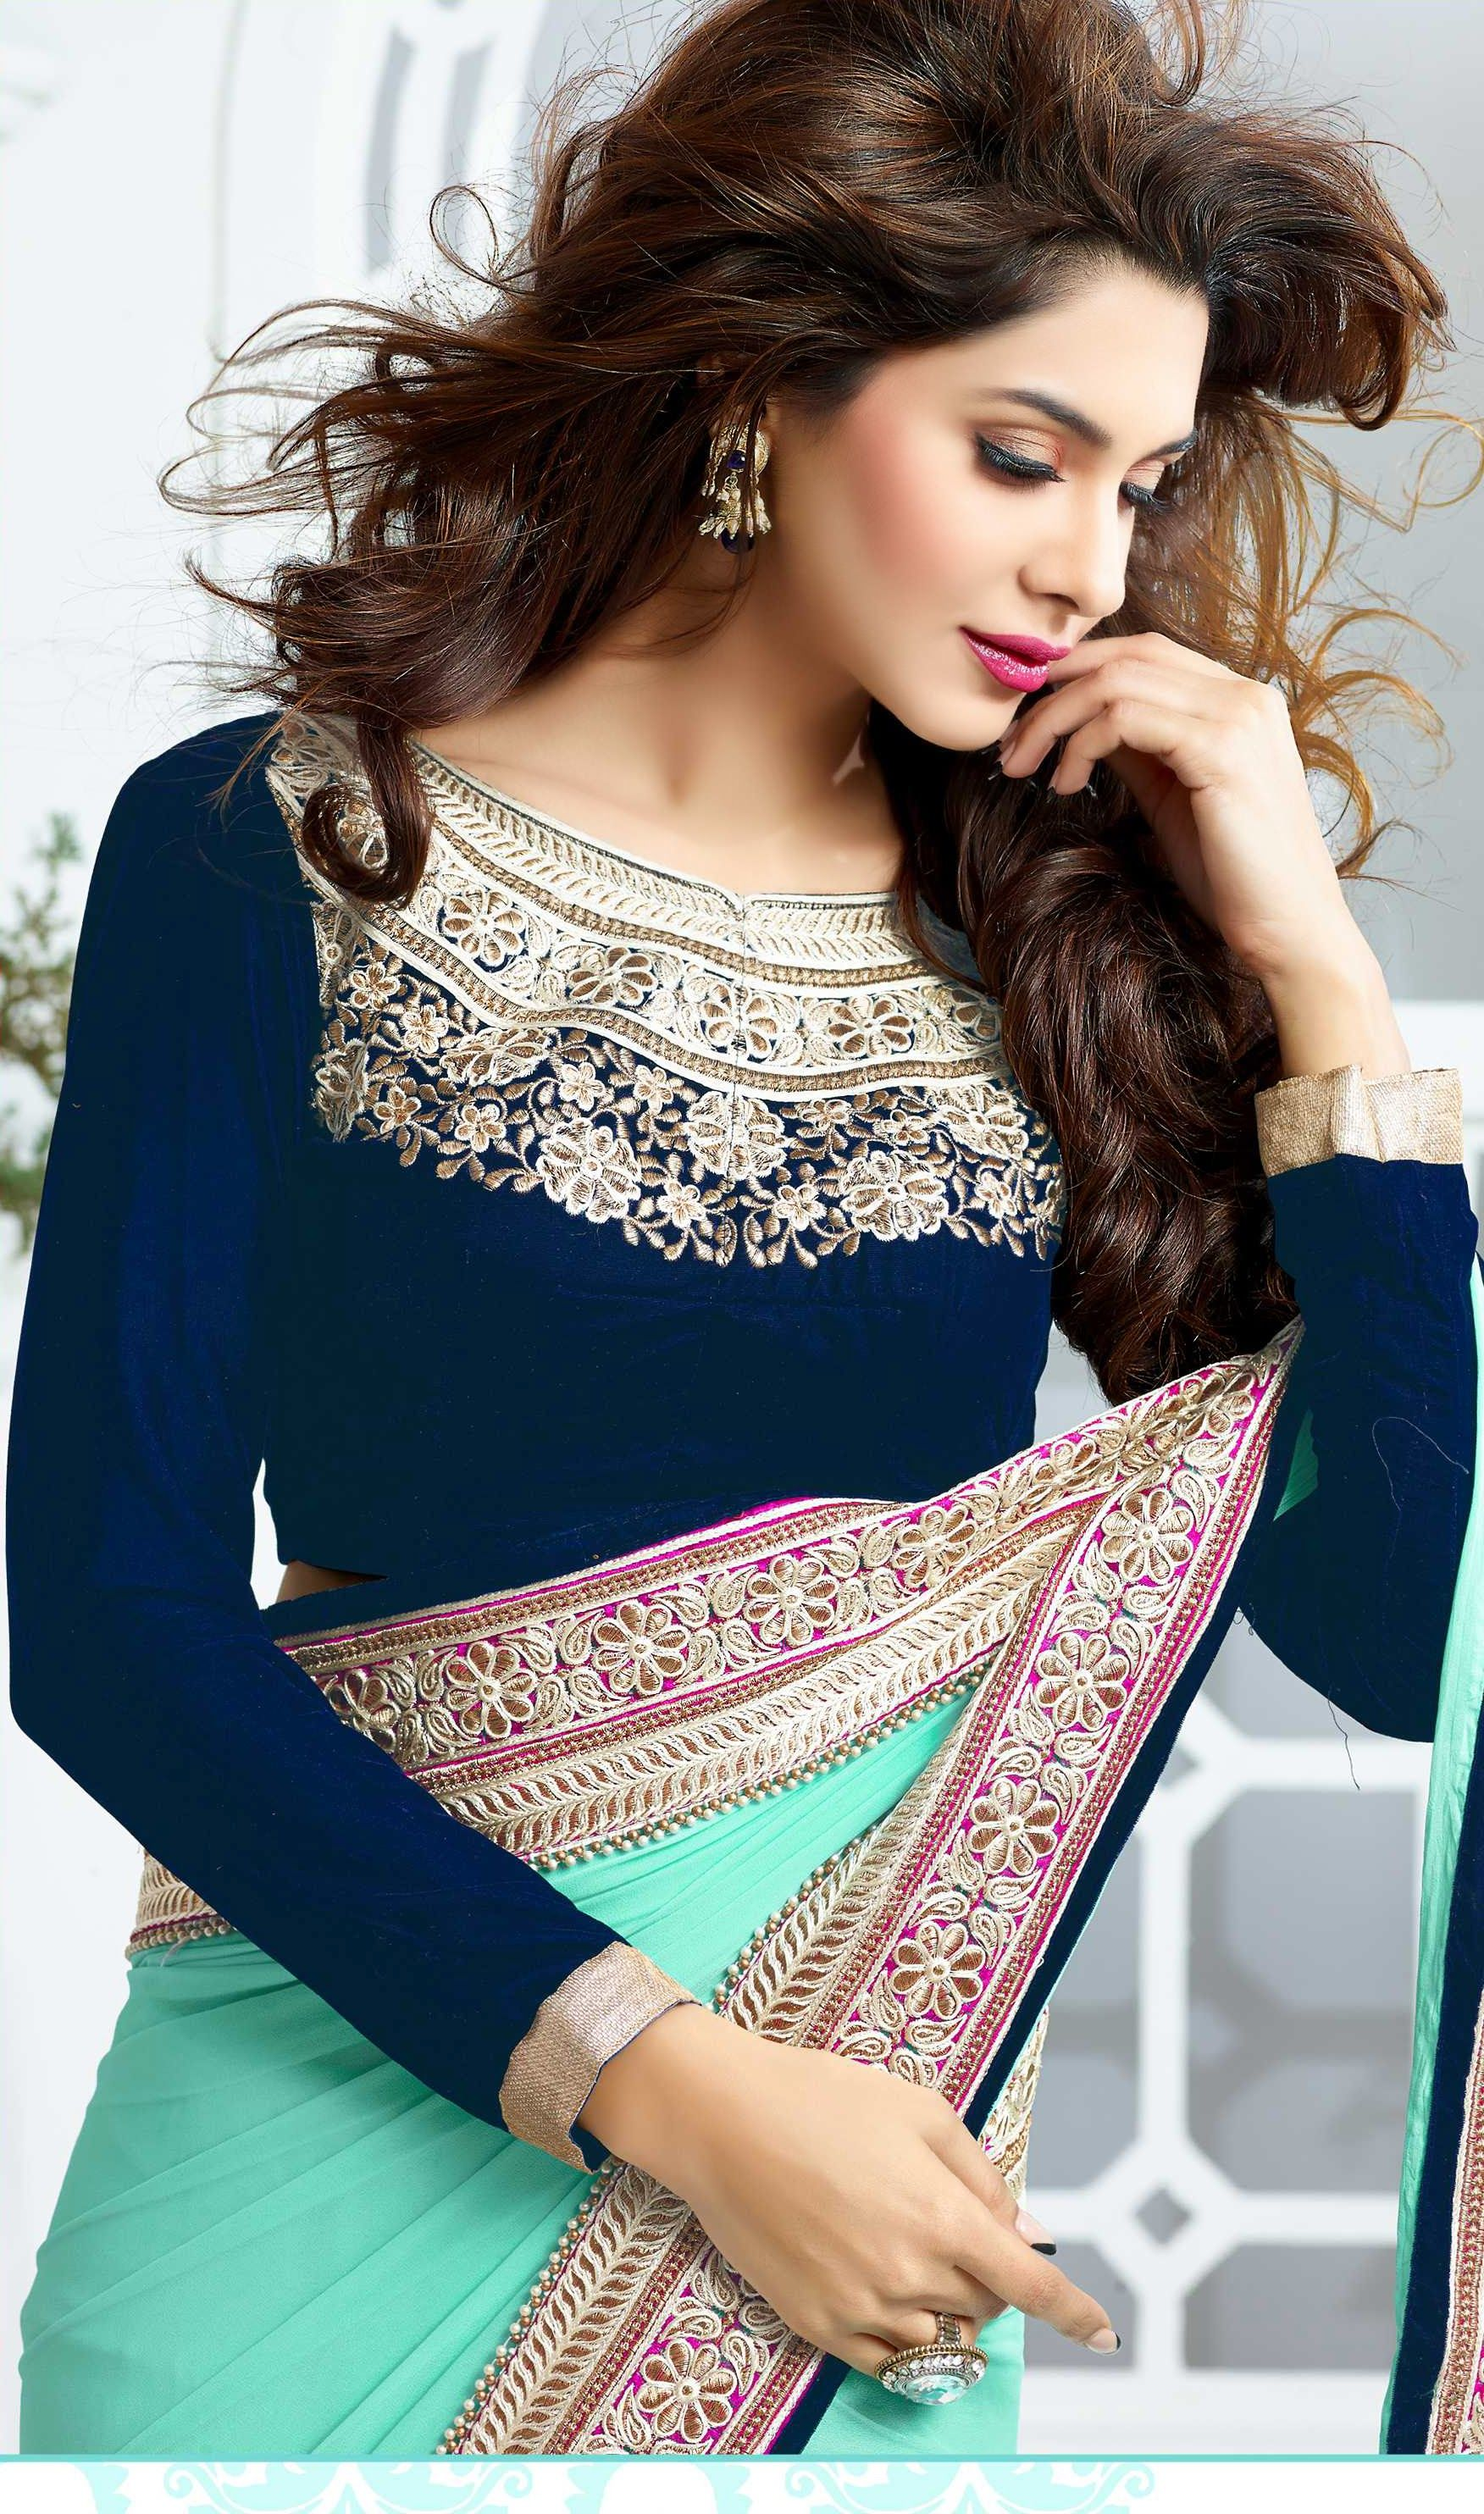 Embroidery Designers In Chennai